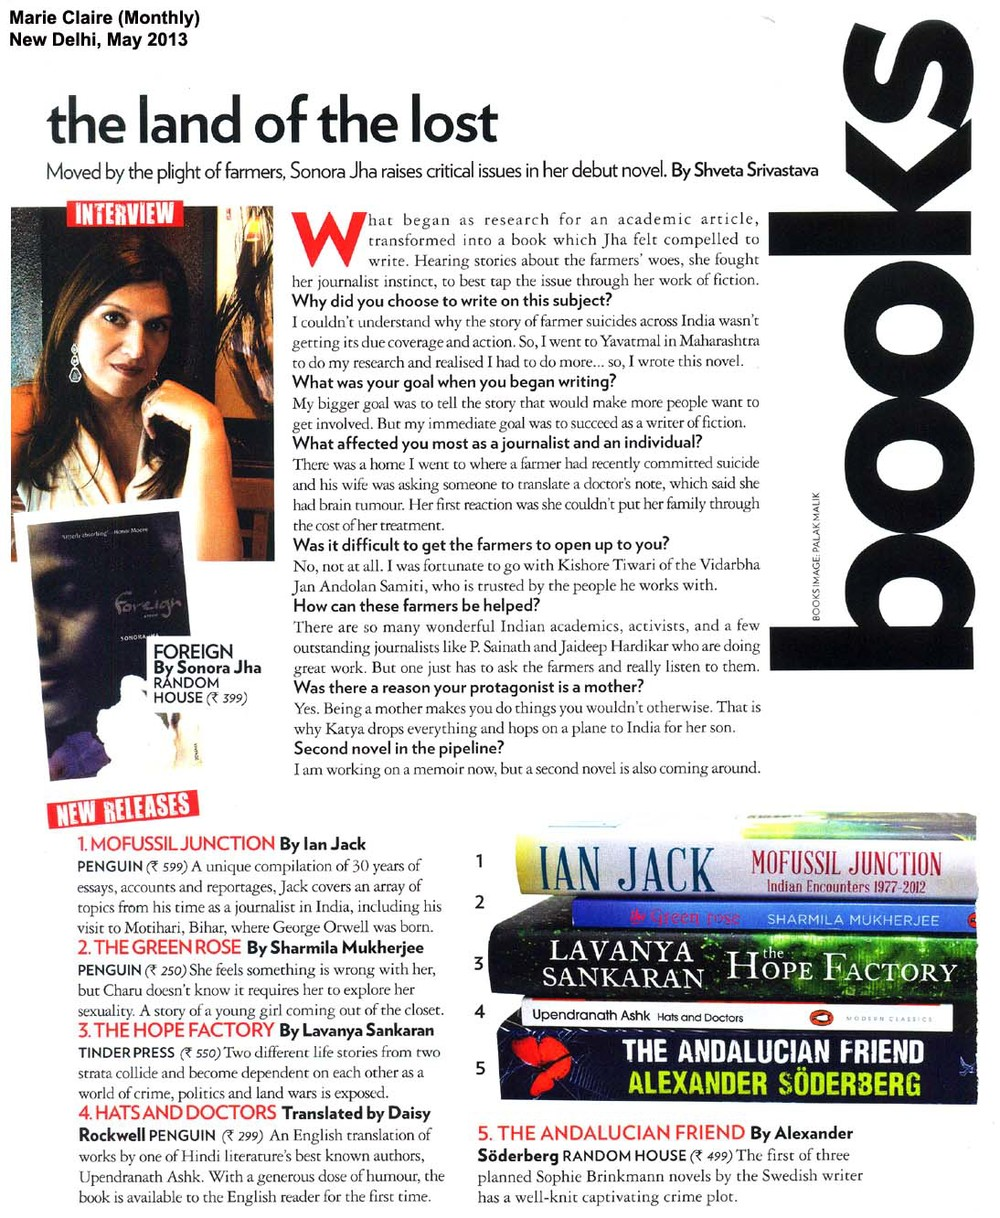 An interview in Marie Claire India's May 2013 edition